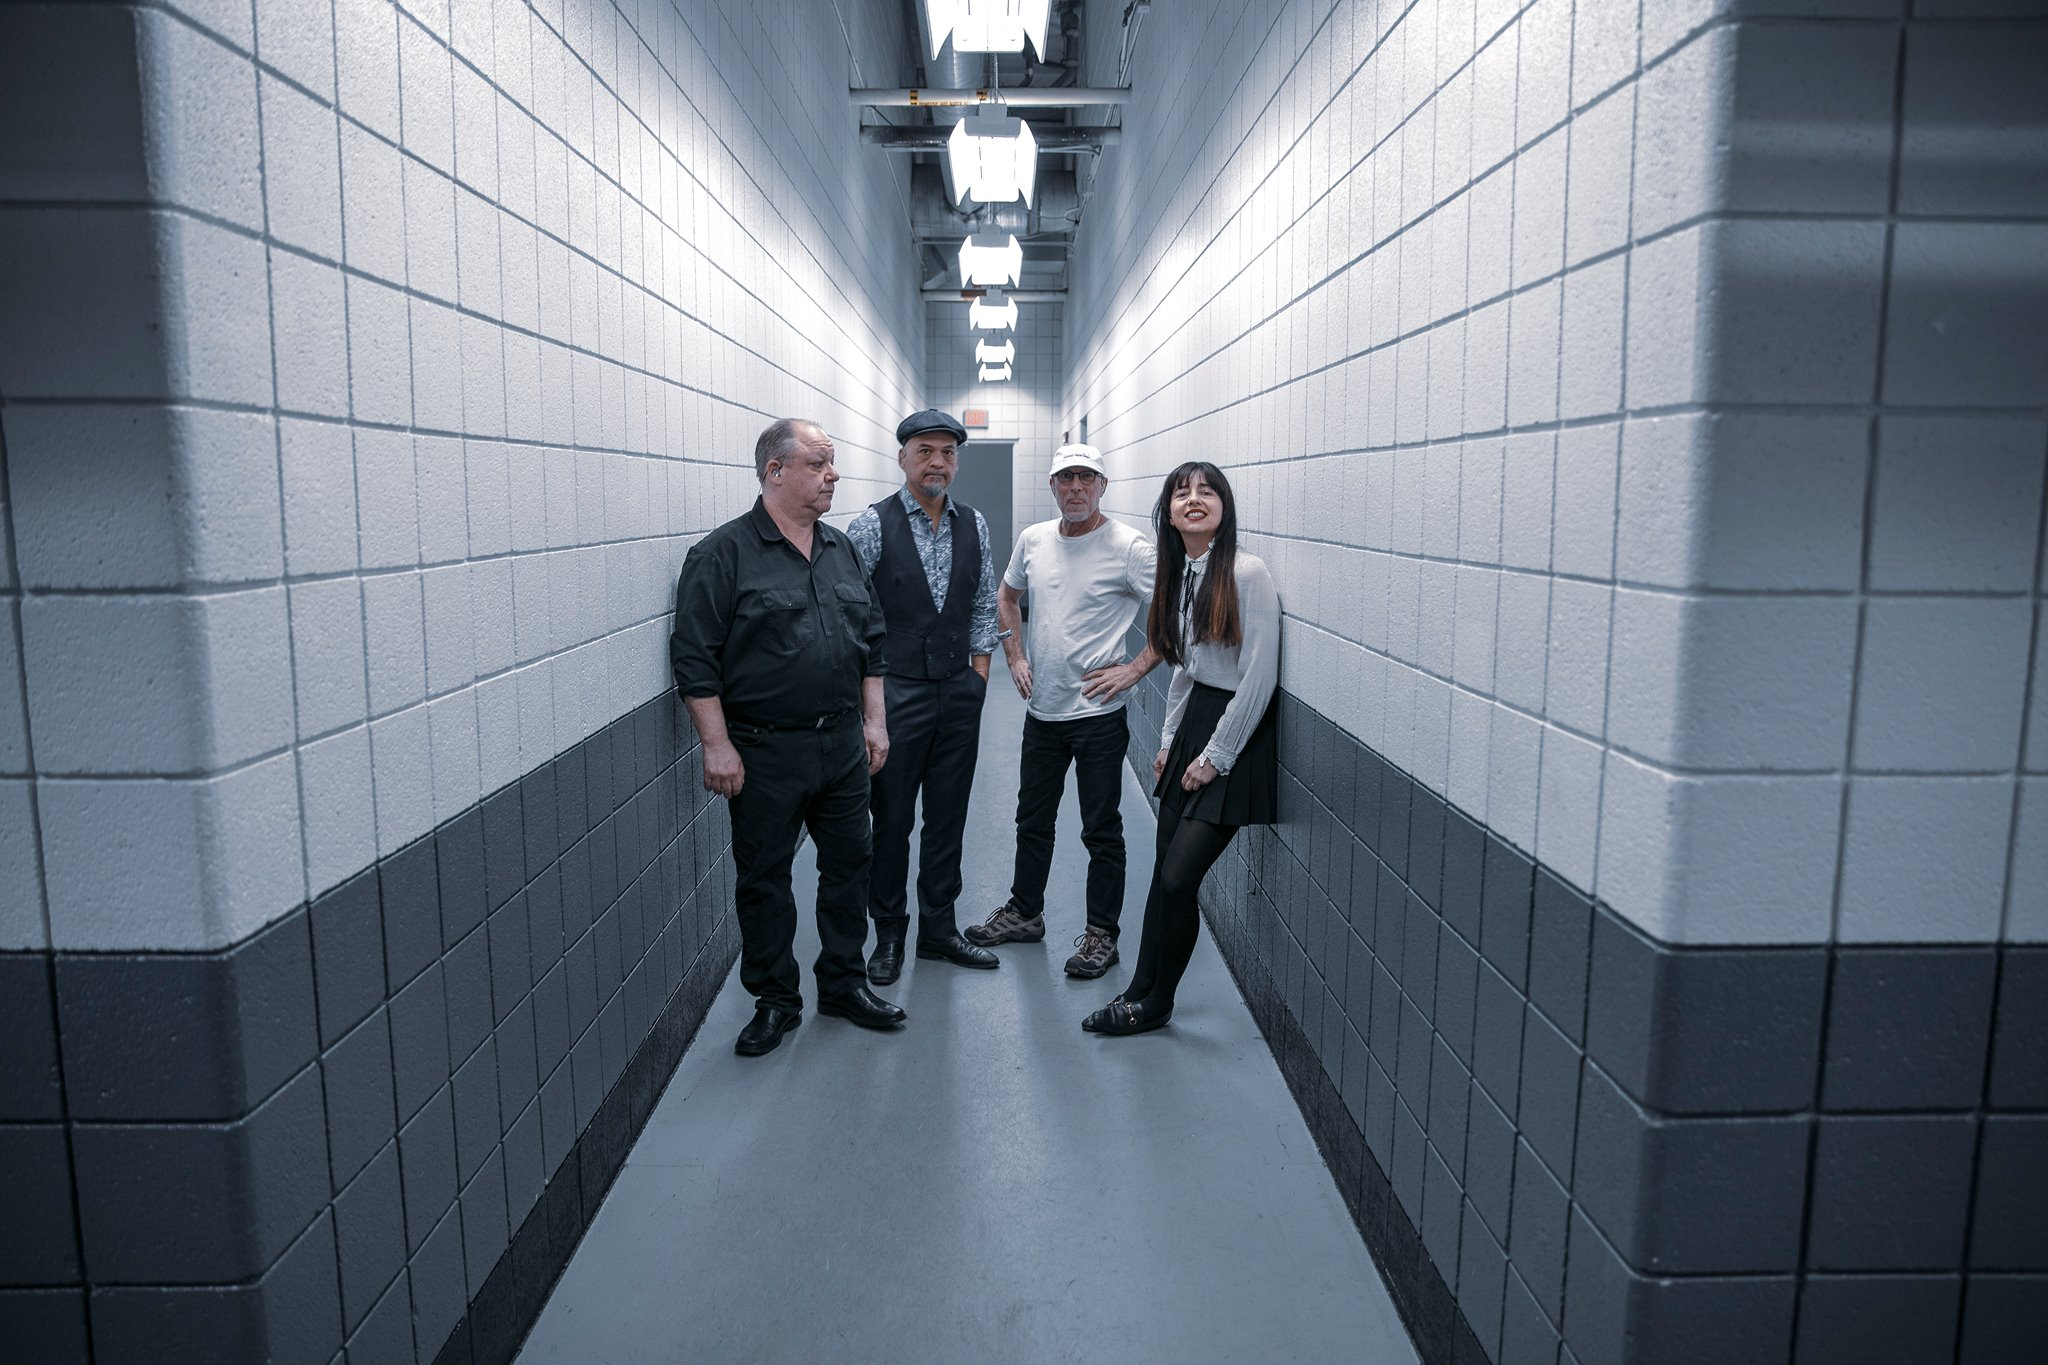 Photo by Simon Foster courtesy of PIXIES Facebook page